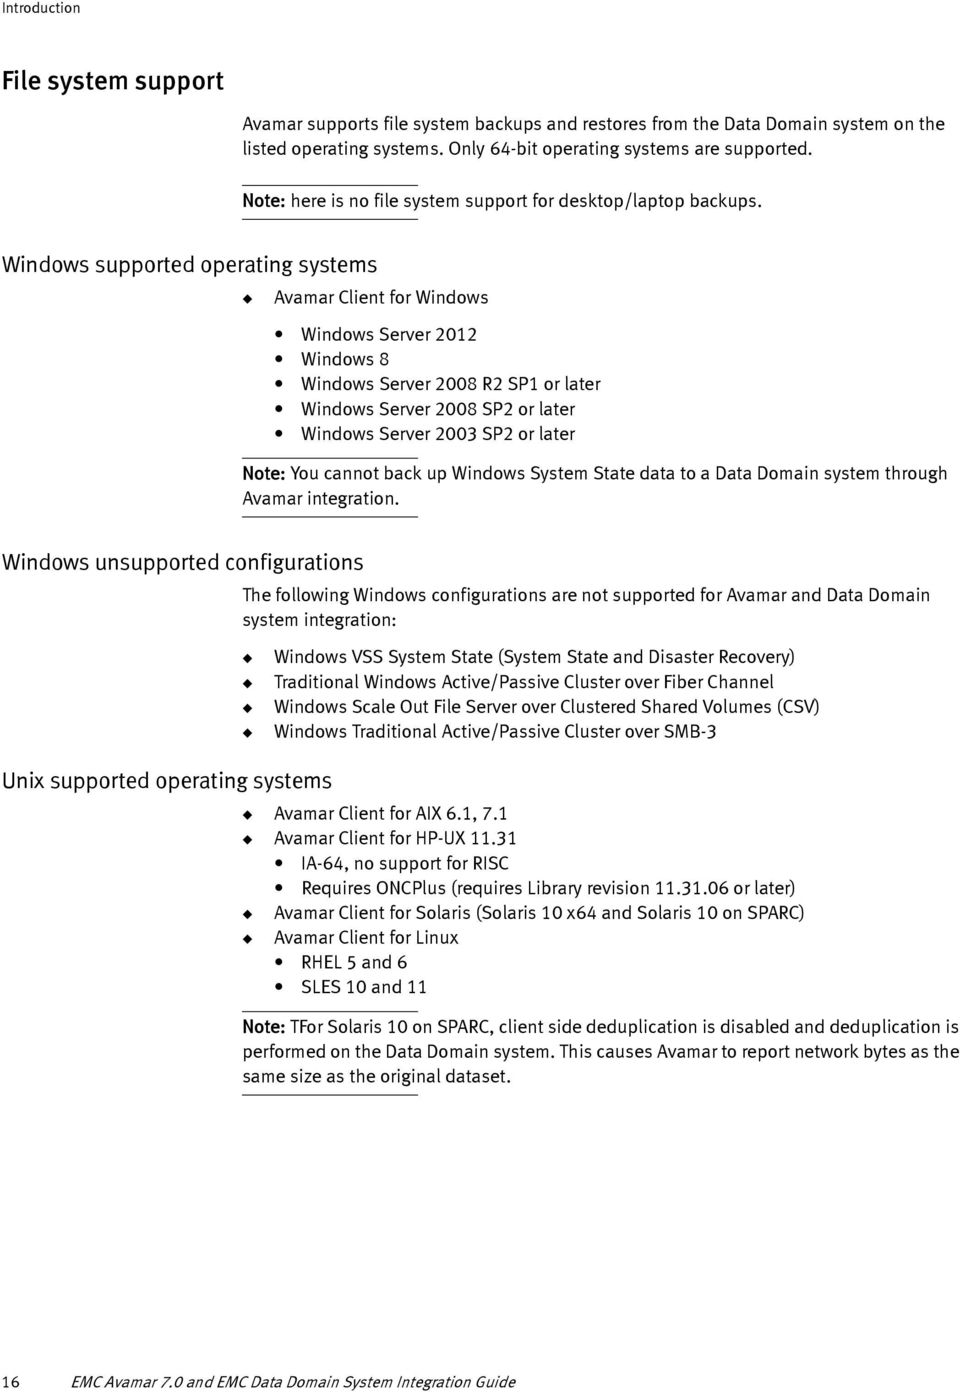 Windows supported operating systems Avamar Client for Windows Windows Server 2012 Windows 8 Windows Server 2008 R2 SP1 or later Windows Server 2008 SP2 or later Windows Server 2003 SP2 or later Note: